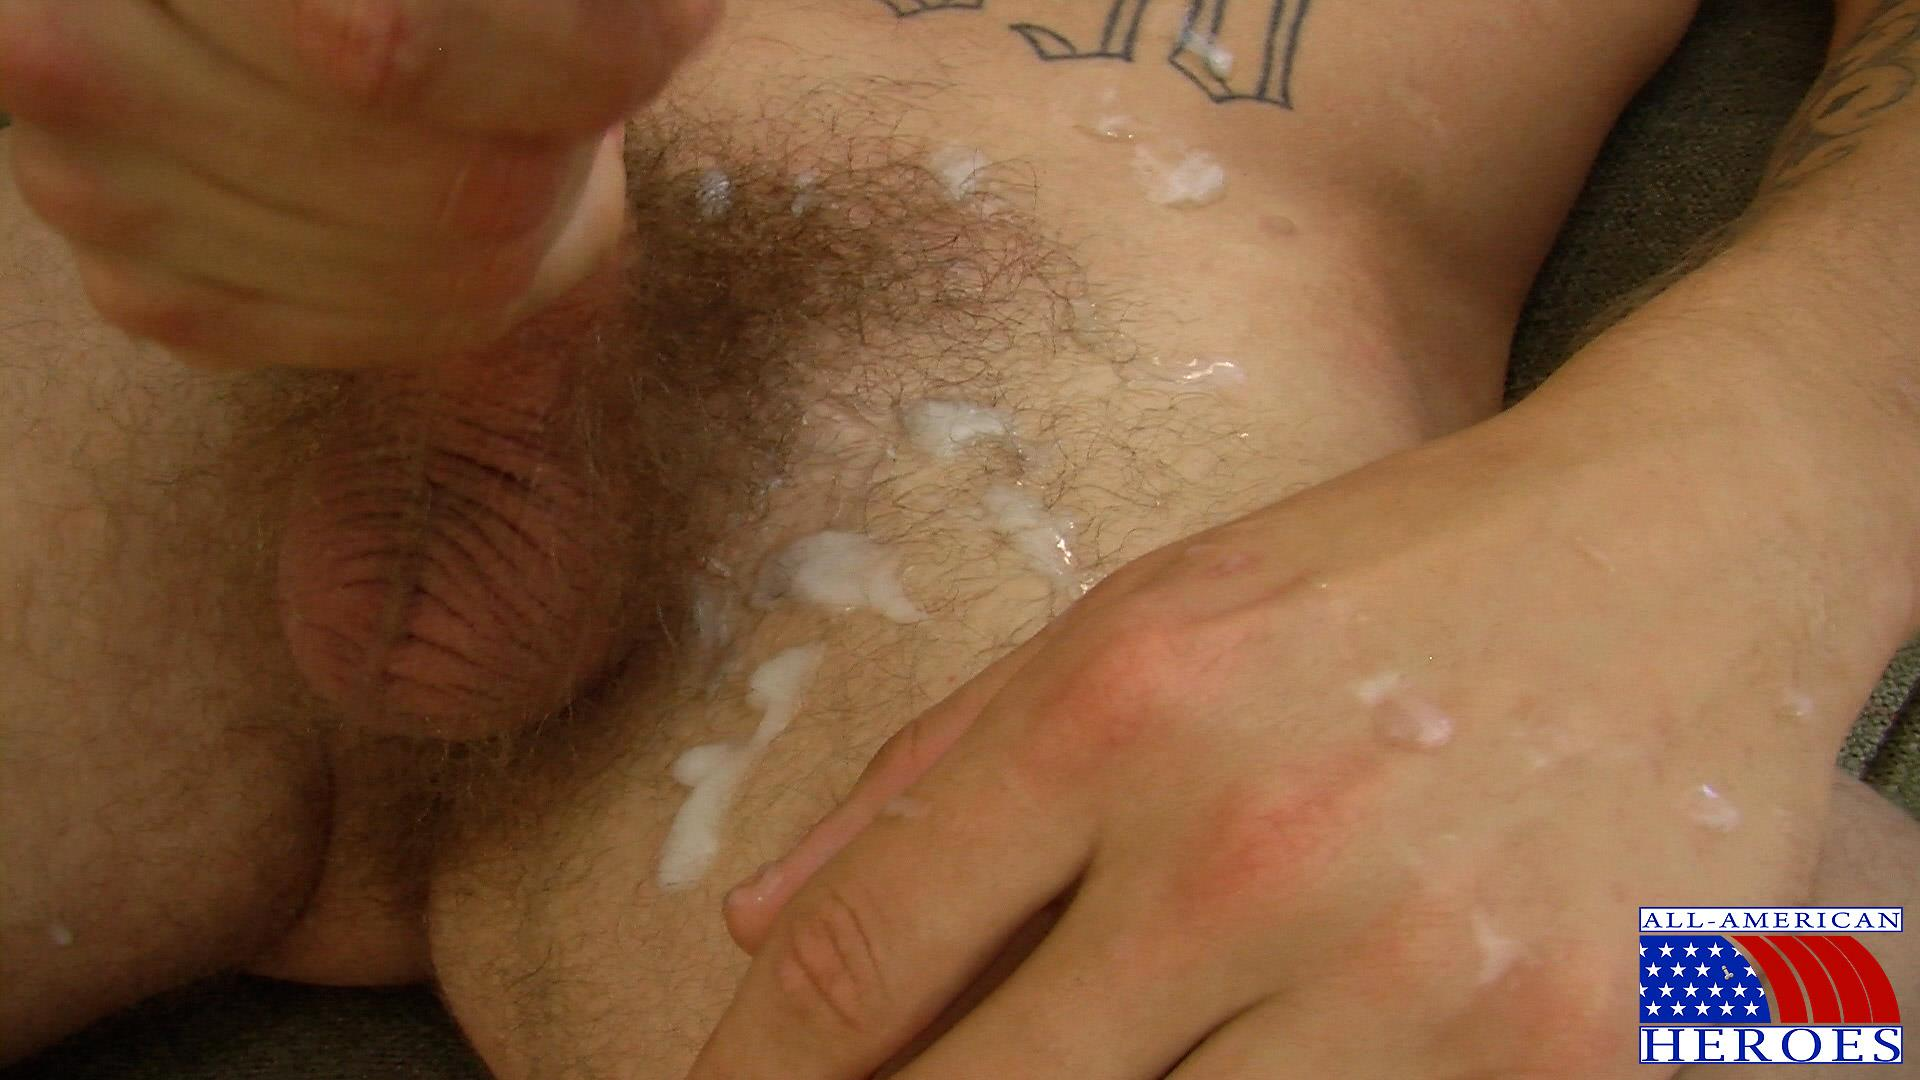 All American Heroes US Army Specialist Clark Jerking His Big Hairy Cock Amateur Gay Porn 15 US Army Specialist Masturbating His Hairy Curved Cock